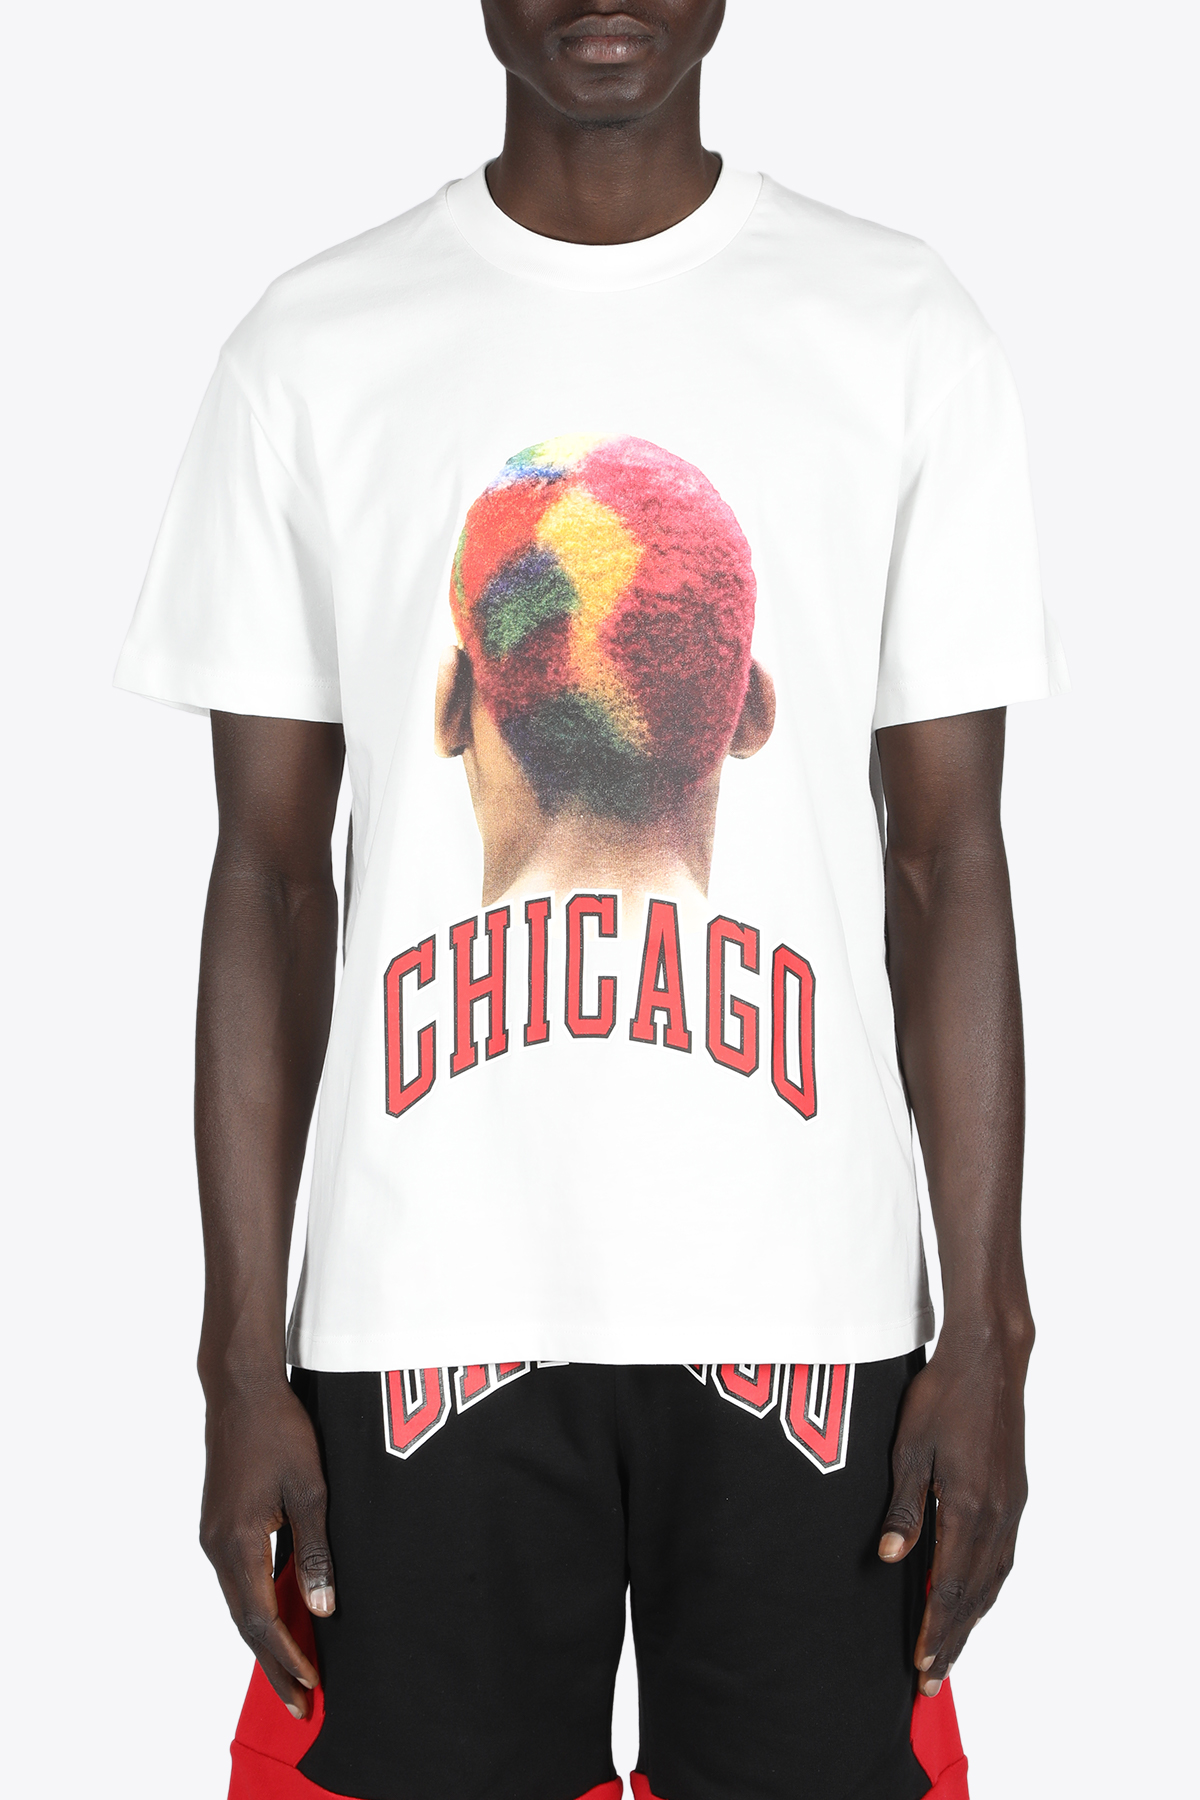 CHICAGO FRONT LOGO BACK IH NOM UH NIT | 8 | NUS21231 CHICAGI FRONT LOGO BACK081